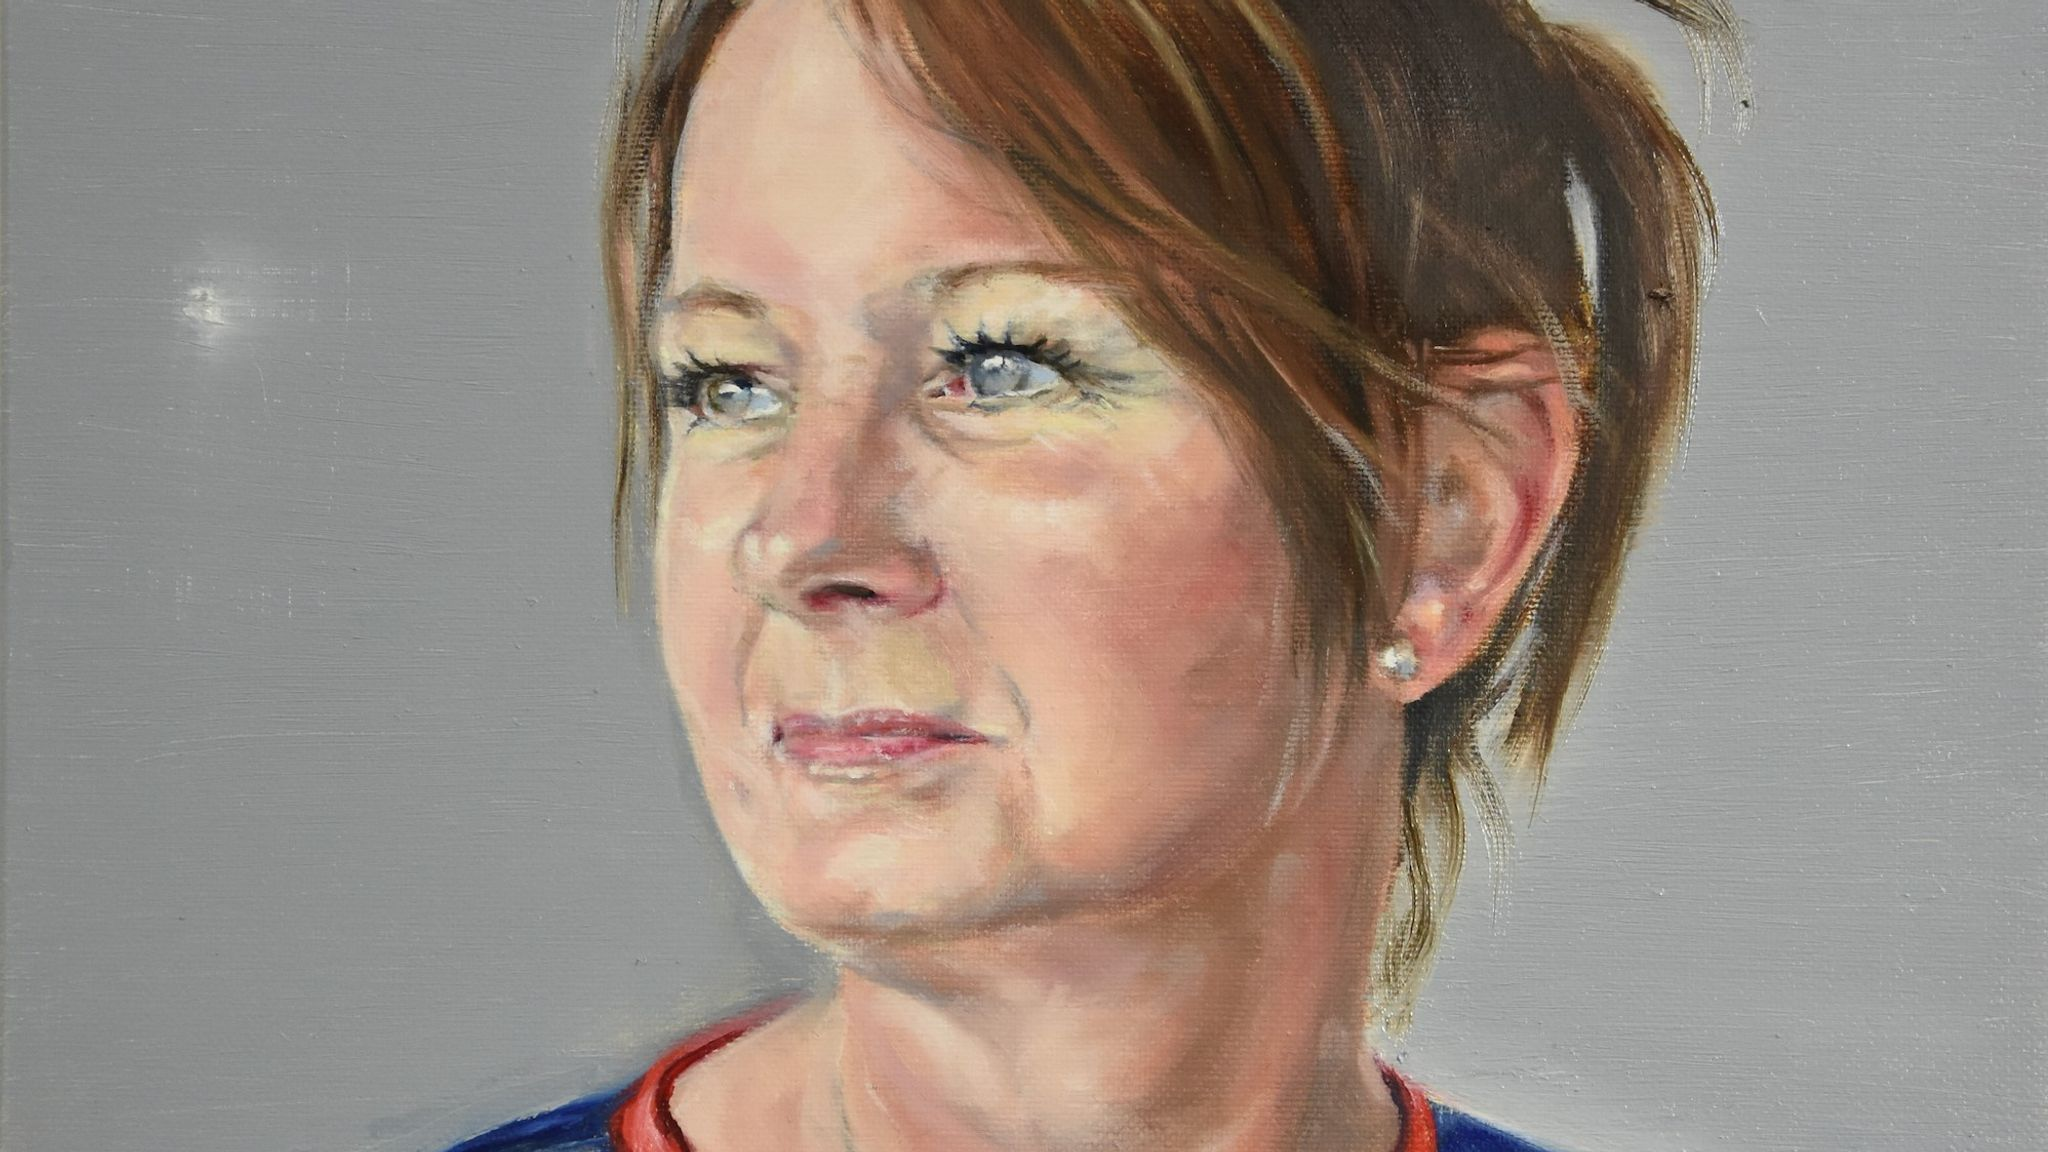 Sharon Stone by Peter Monkman, for the NHS Heroes virtual exhibition